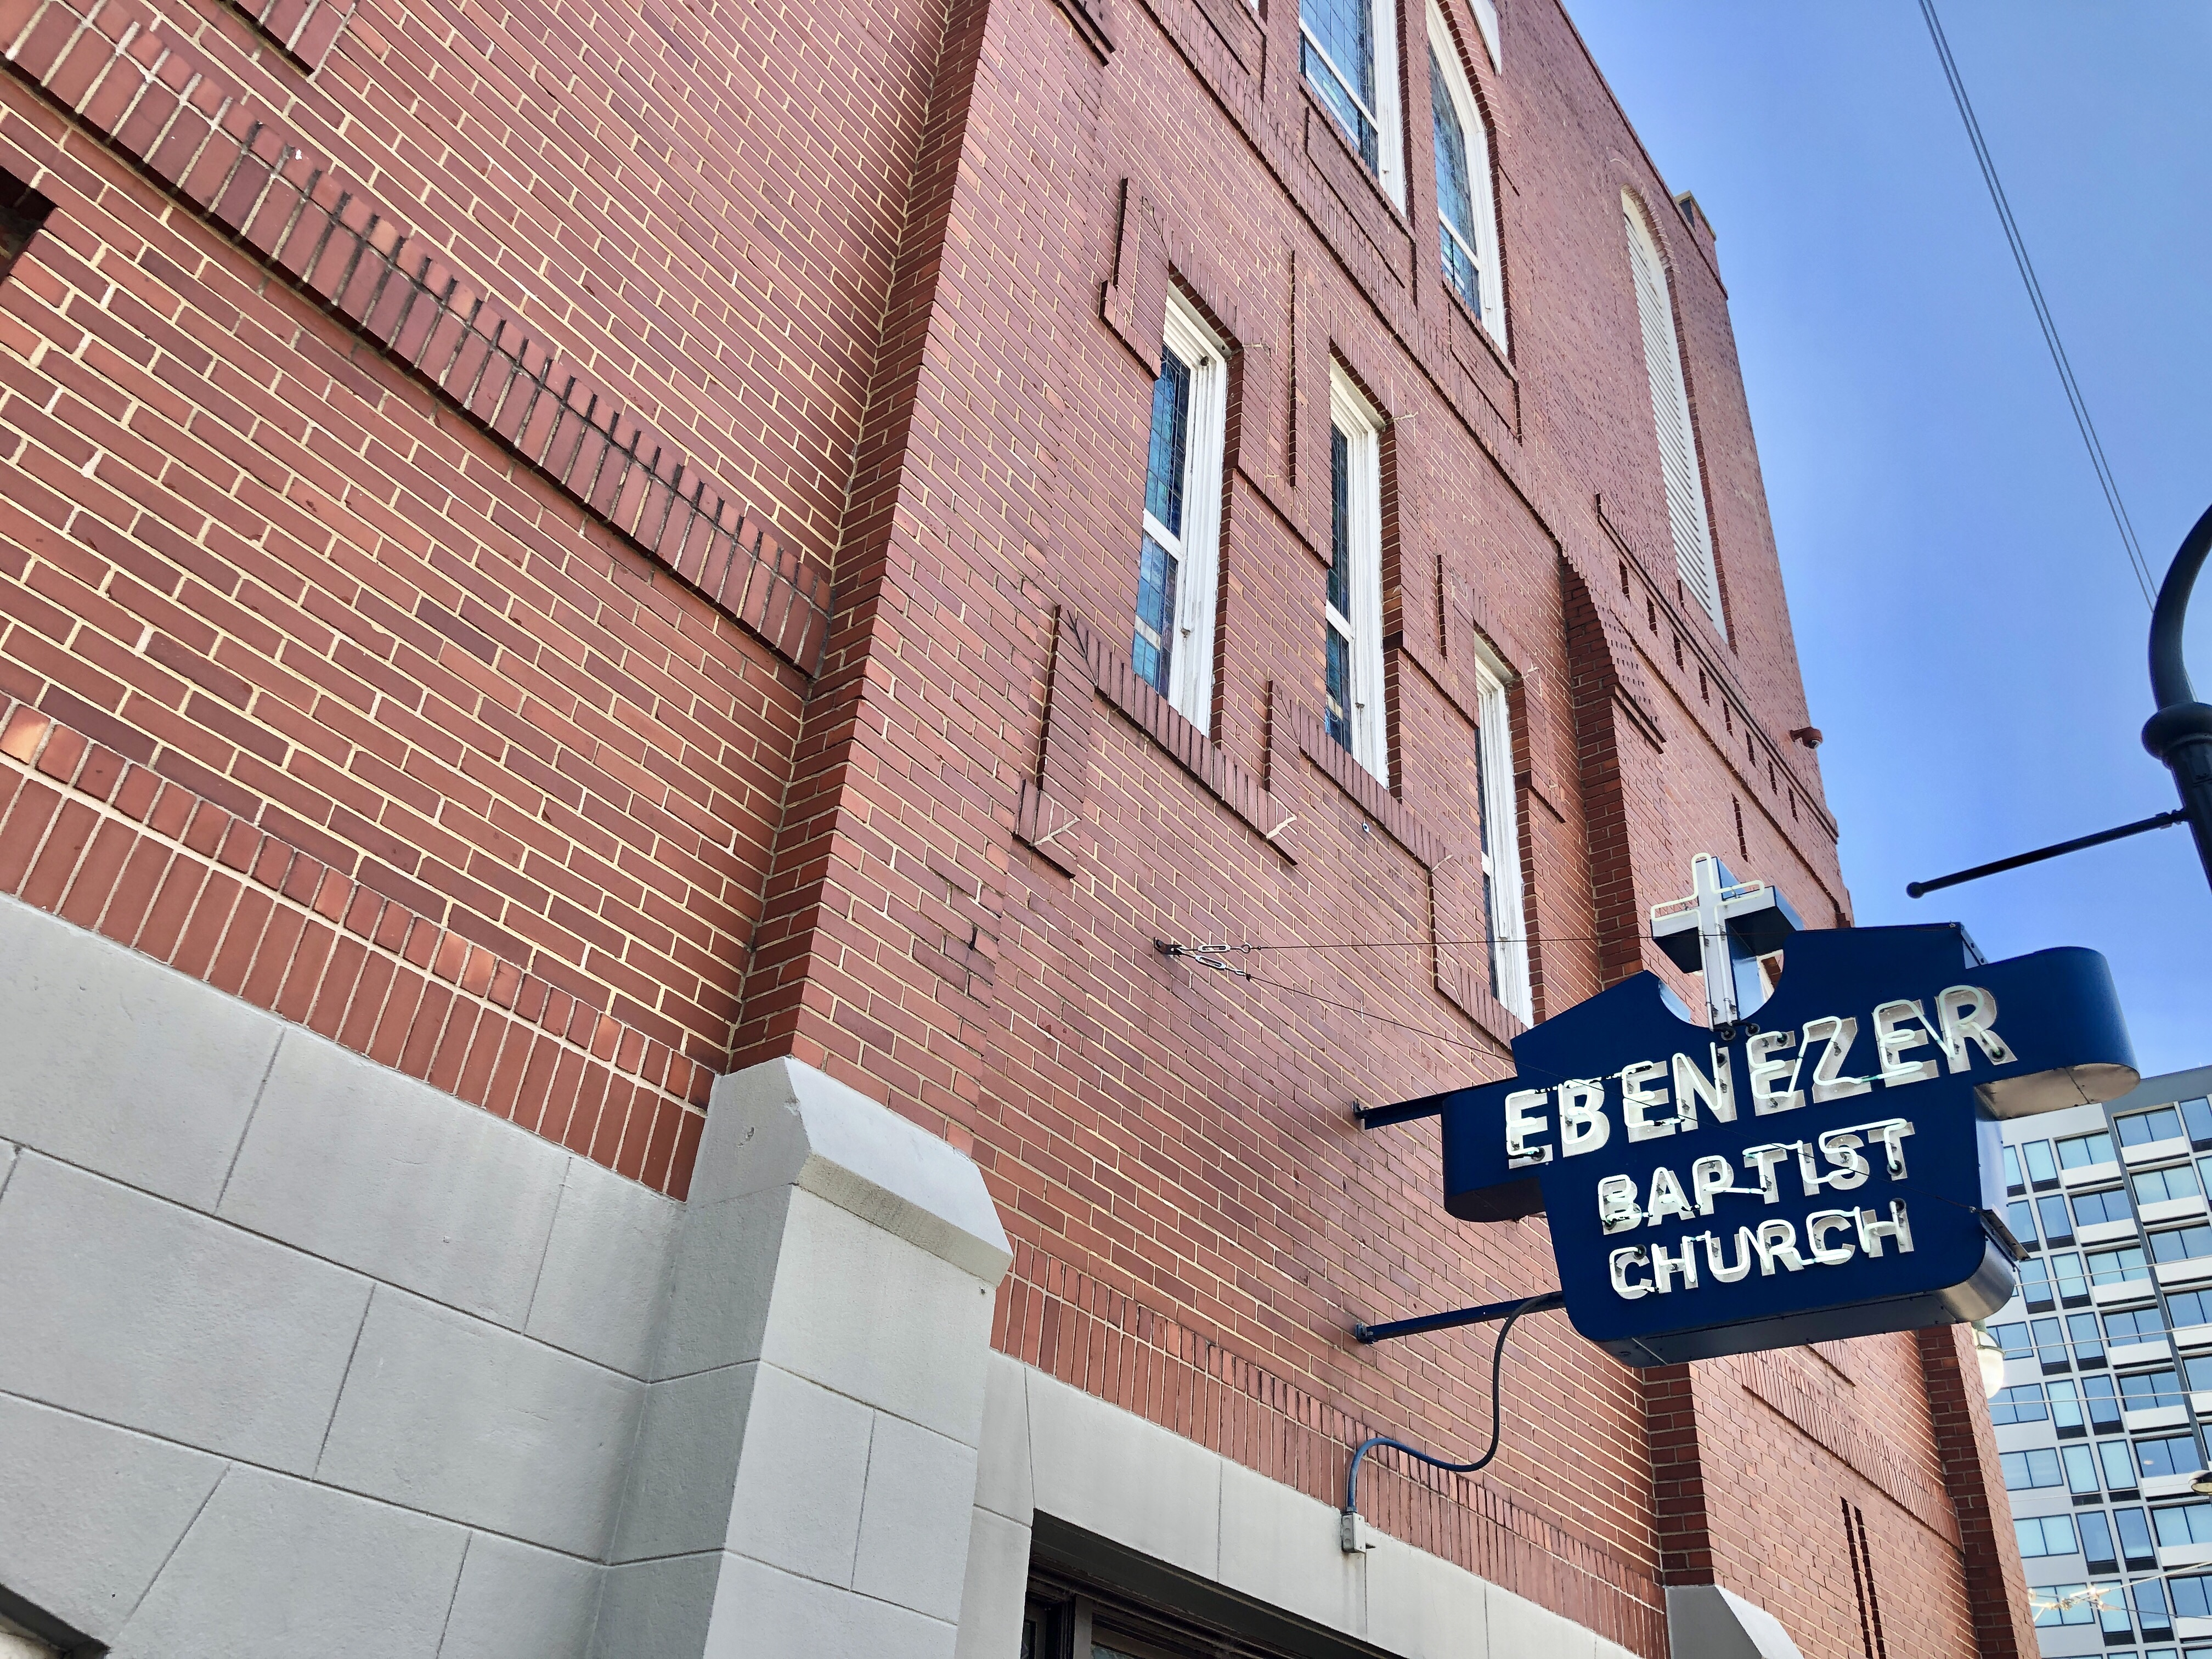 Martin Luther King Jr. National Historical Park and Ebenezer Baptist Church in Atlanta